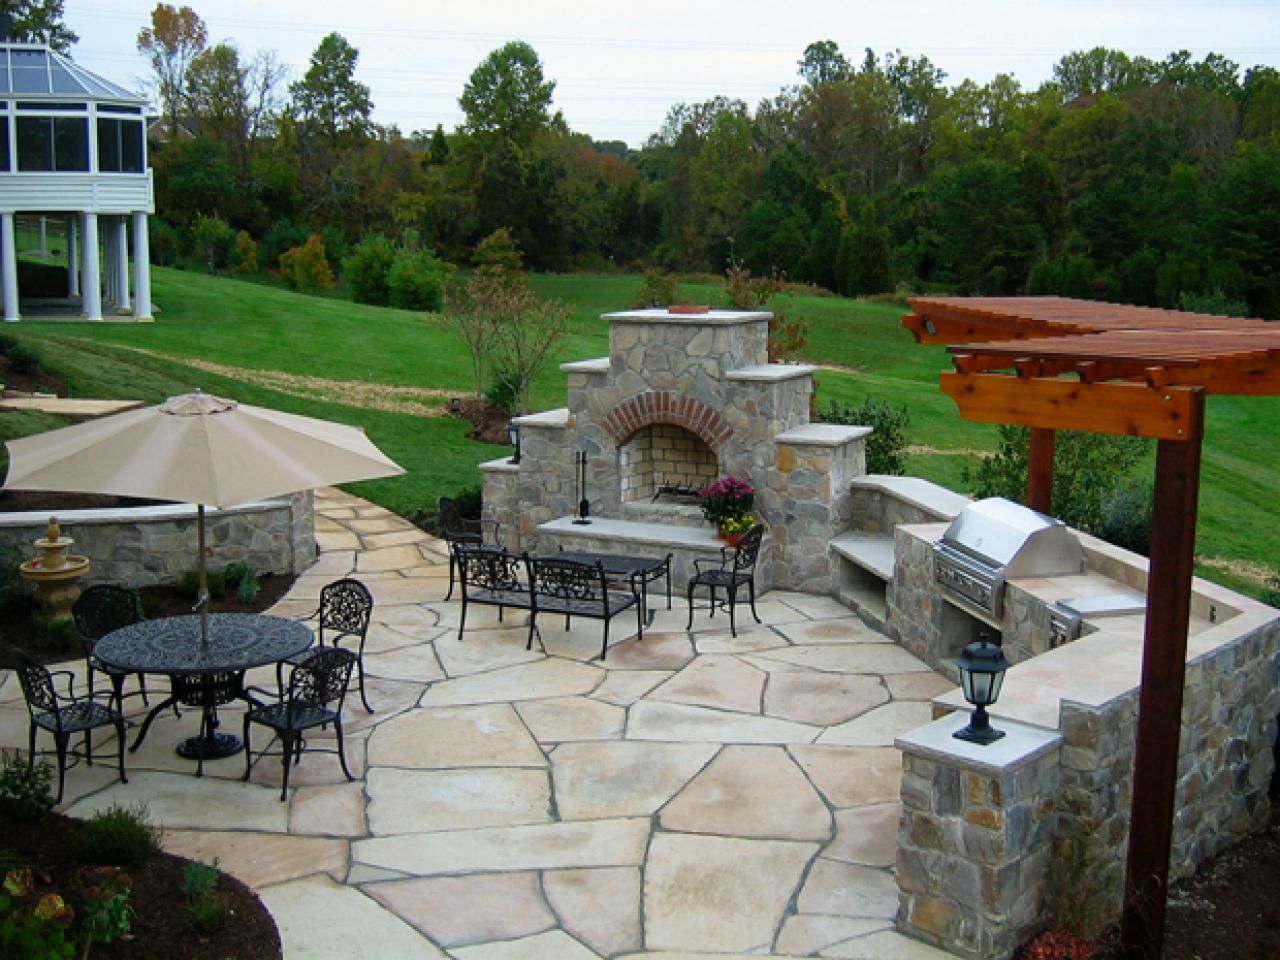 Patio Ideas  Outdoor Spaces  Patio Ideas, Decks. Patio Deck Lumber. Patio Set Barrie. Patio Ideas Target. Patio Bar Columbus. Patio Set Target. Brick Patio Glue. Backyard Patio Remodel. Patio Restaurant Utica Ny